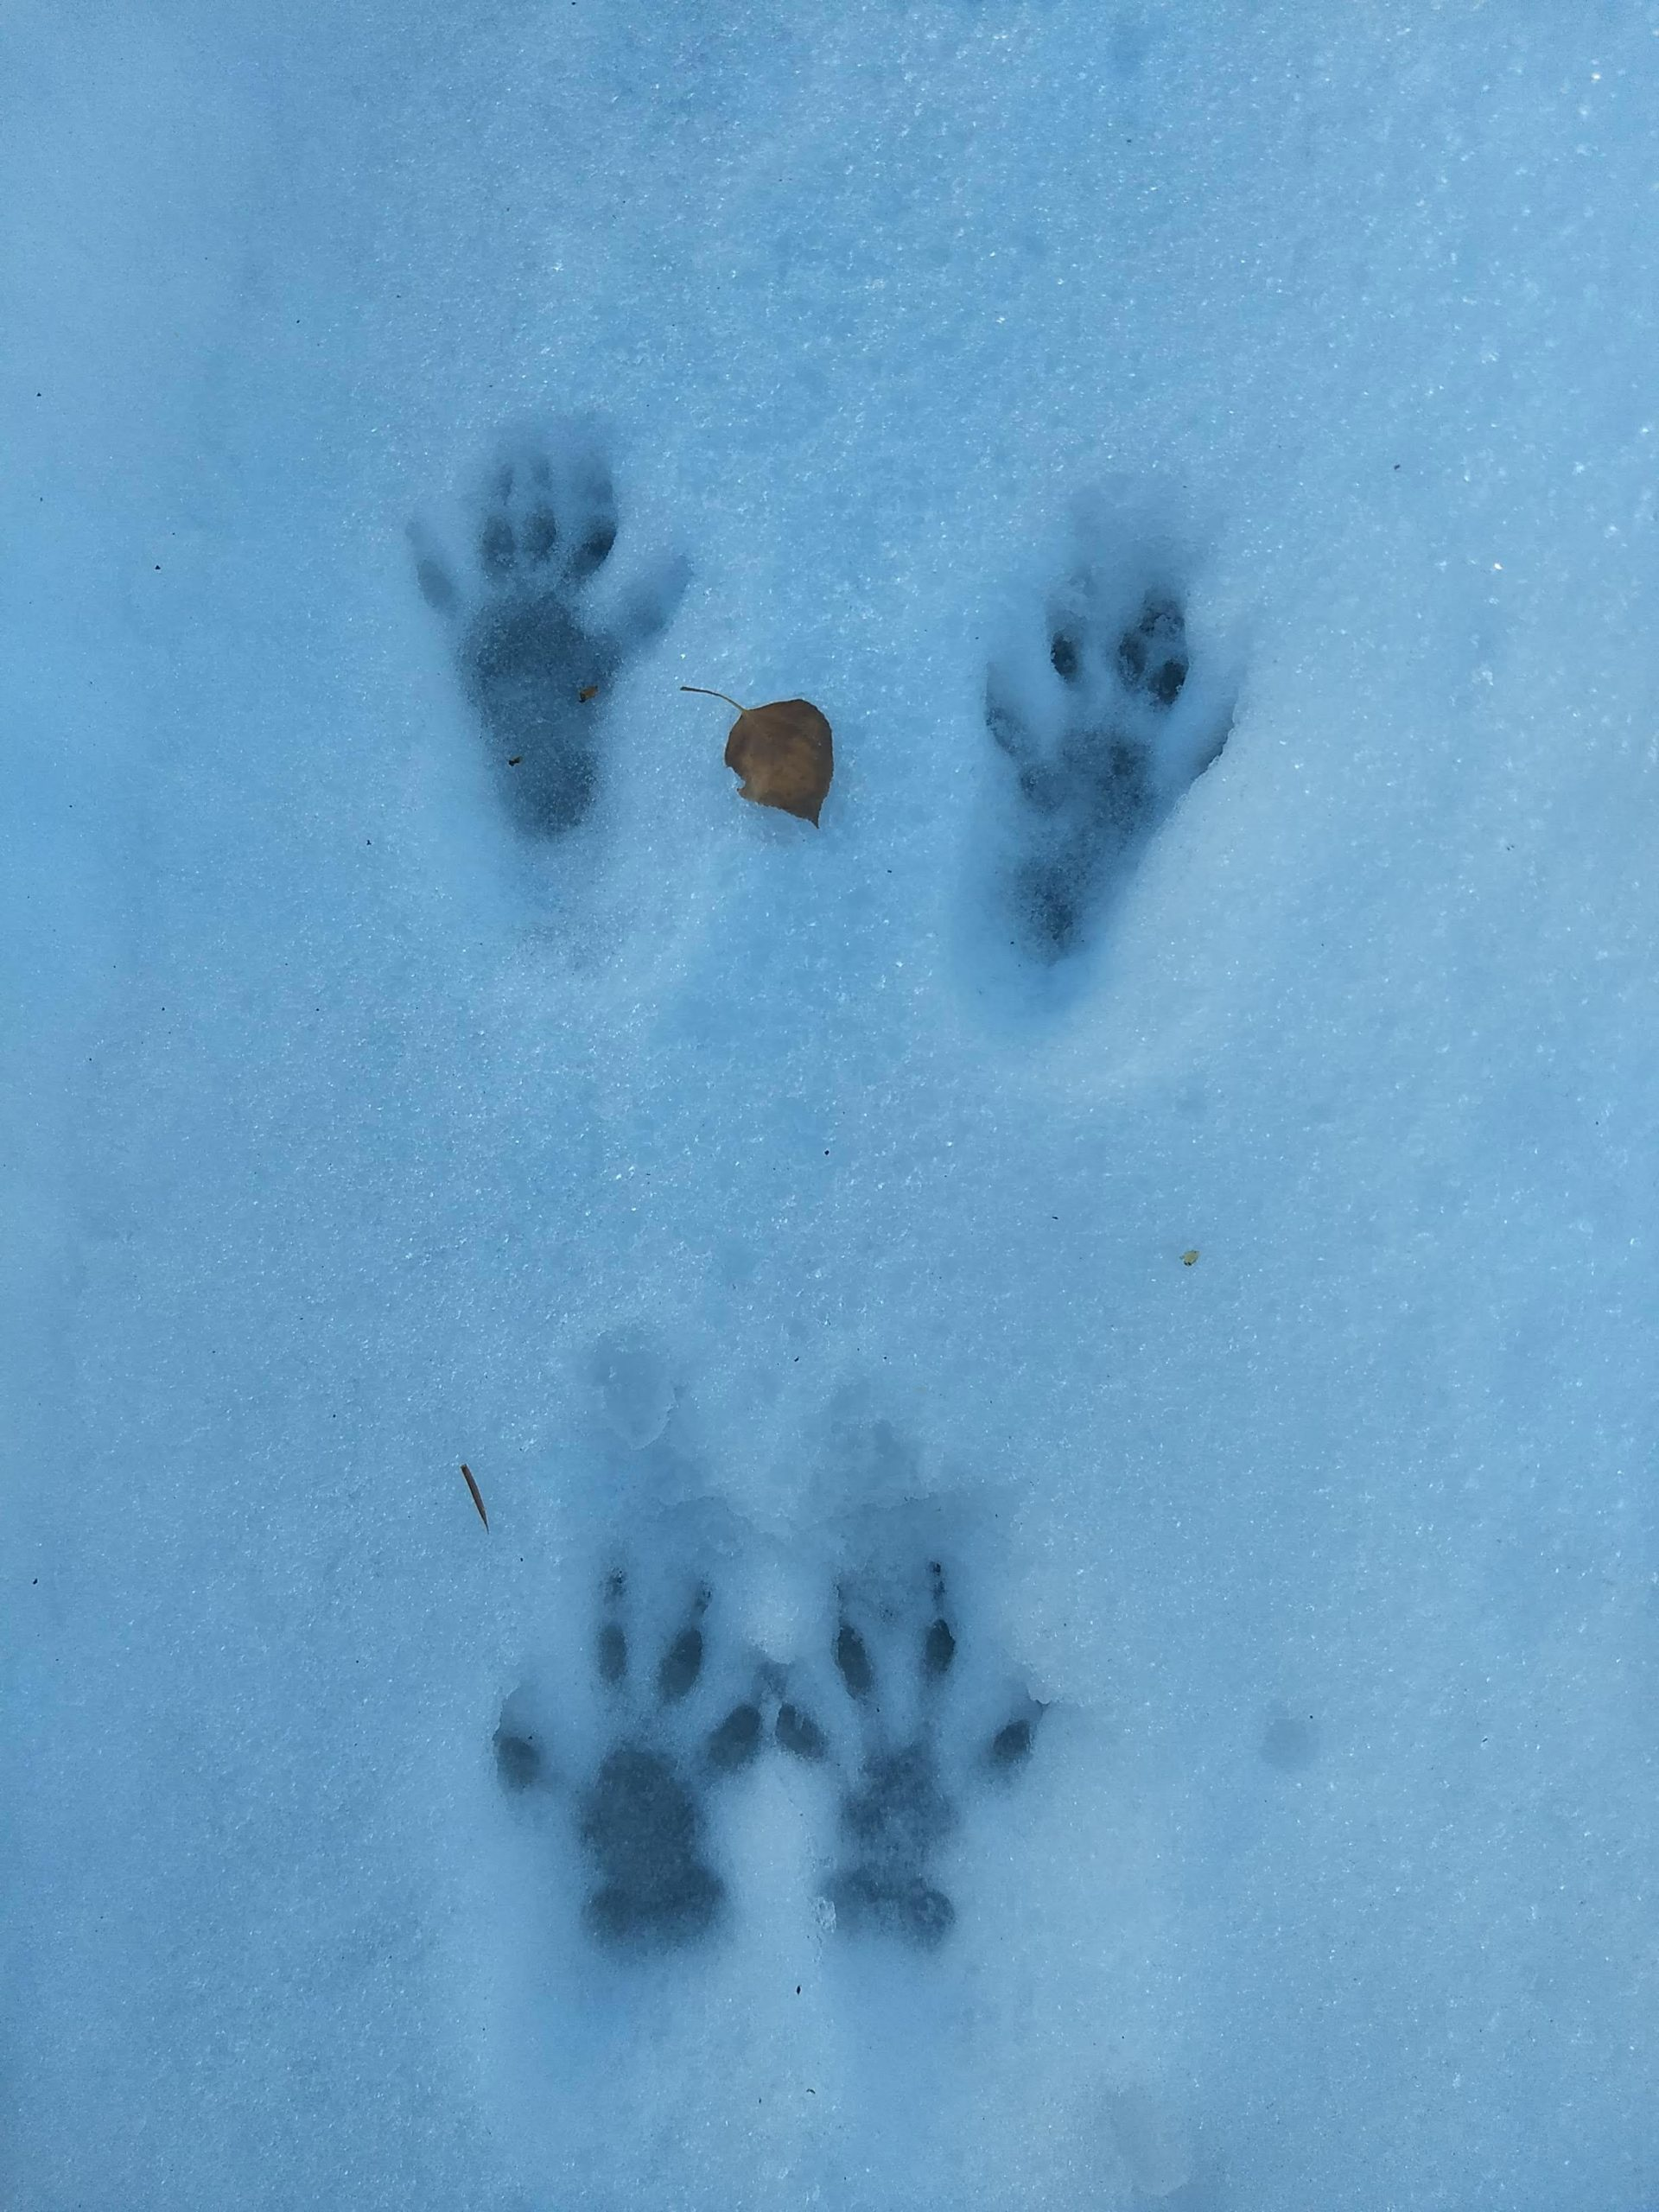 raccoon like prints in the snow